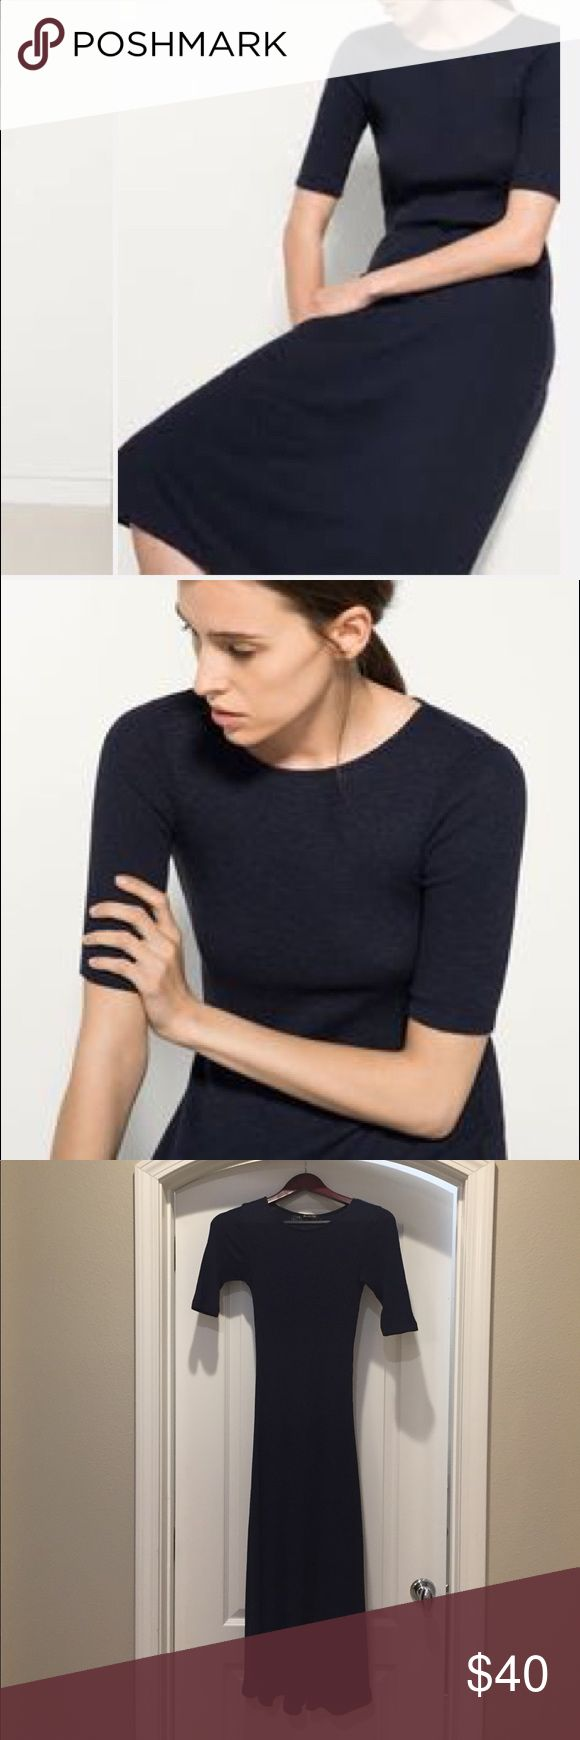 Knit ribbed A-lined dress in navy Like new. Wore once only. 68% cotton 32% viscose. Super comfortable, can go to office in heels or dress down with sneakers or flat sandals. Massimo Dutti Dresses Midi